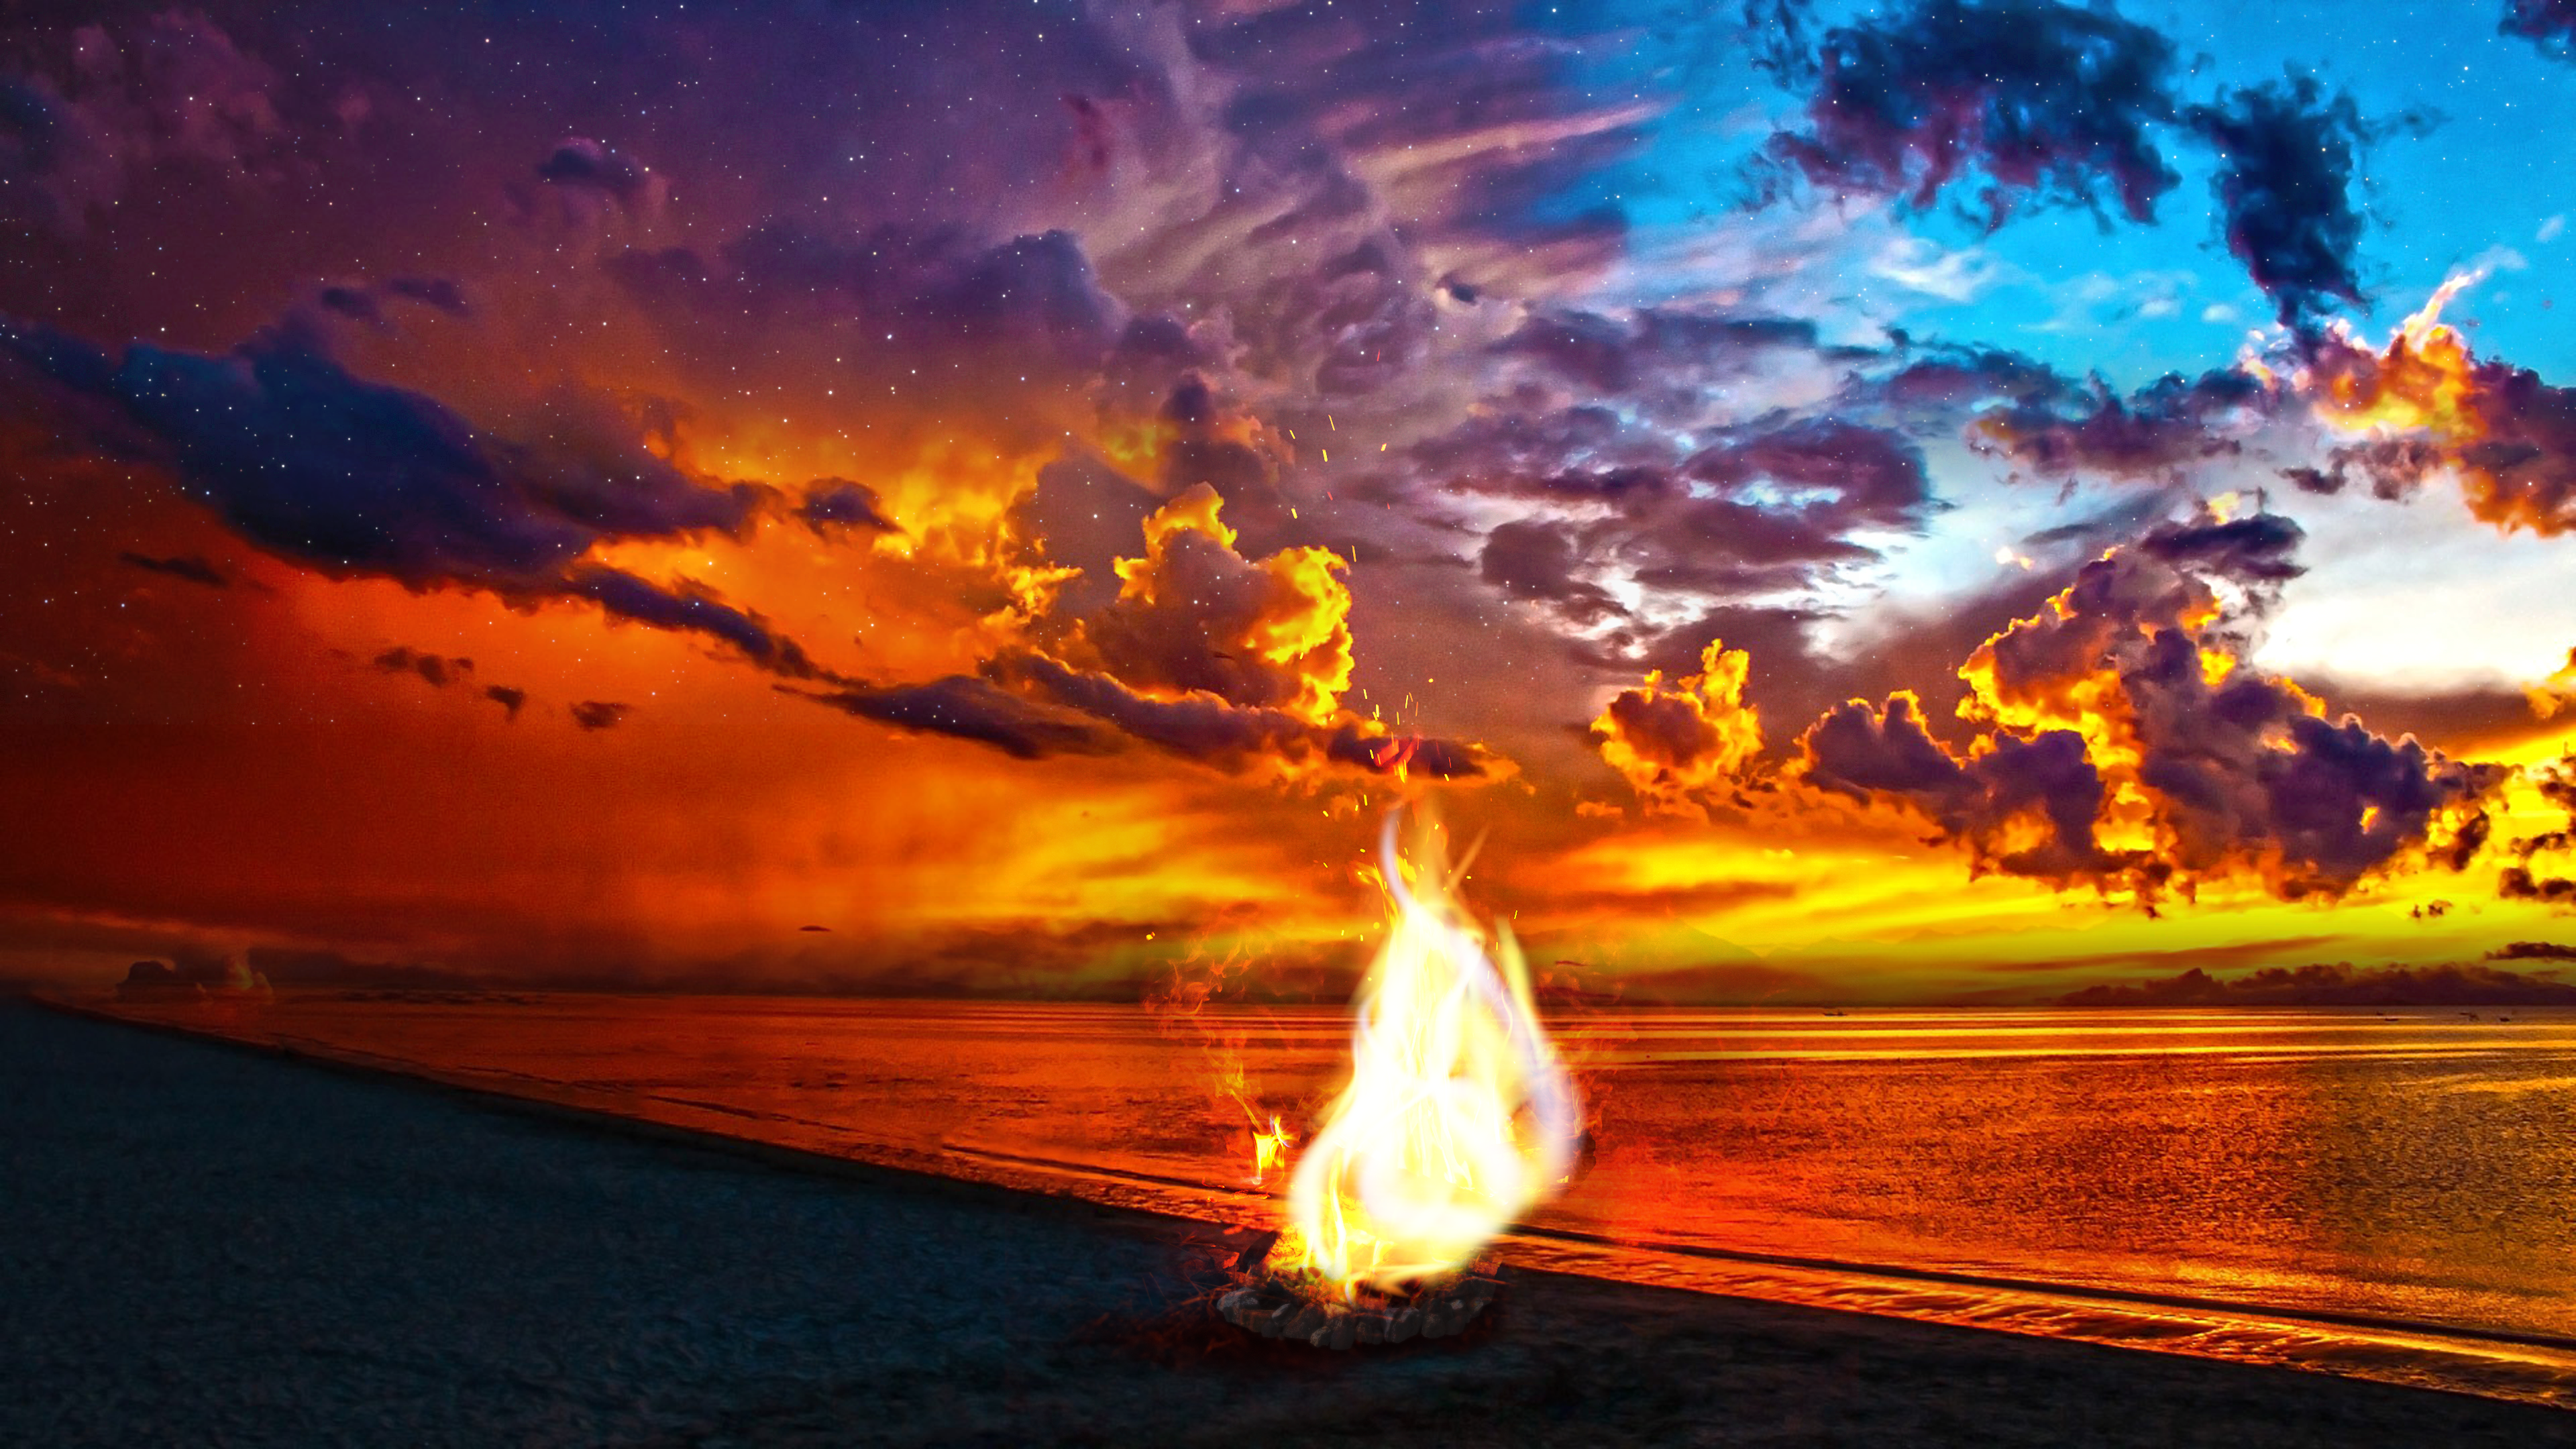 Beach Bonfire 4K Wallpaper Download